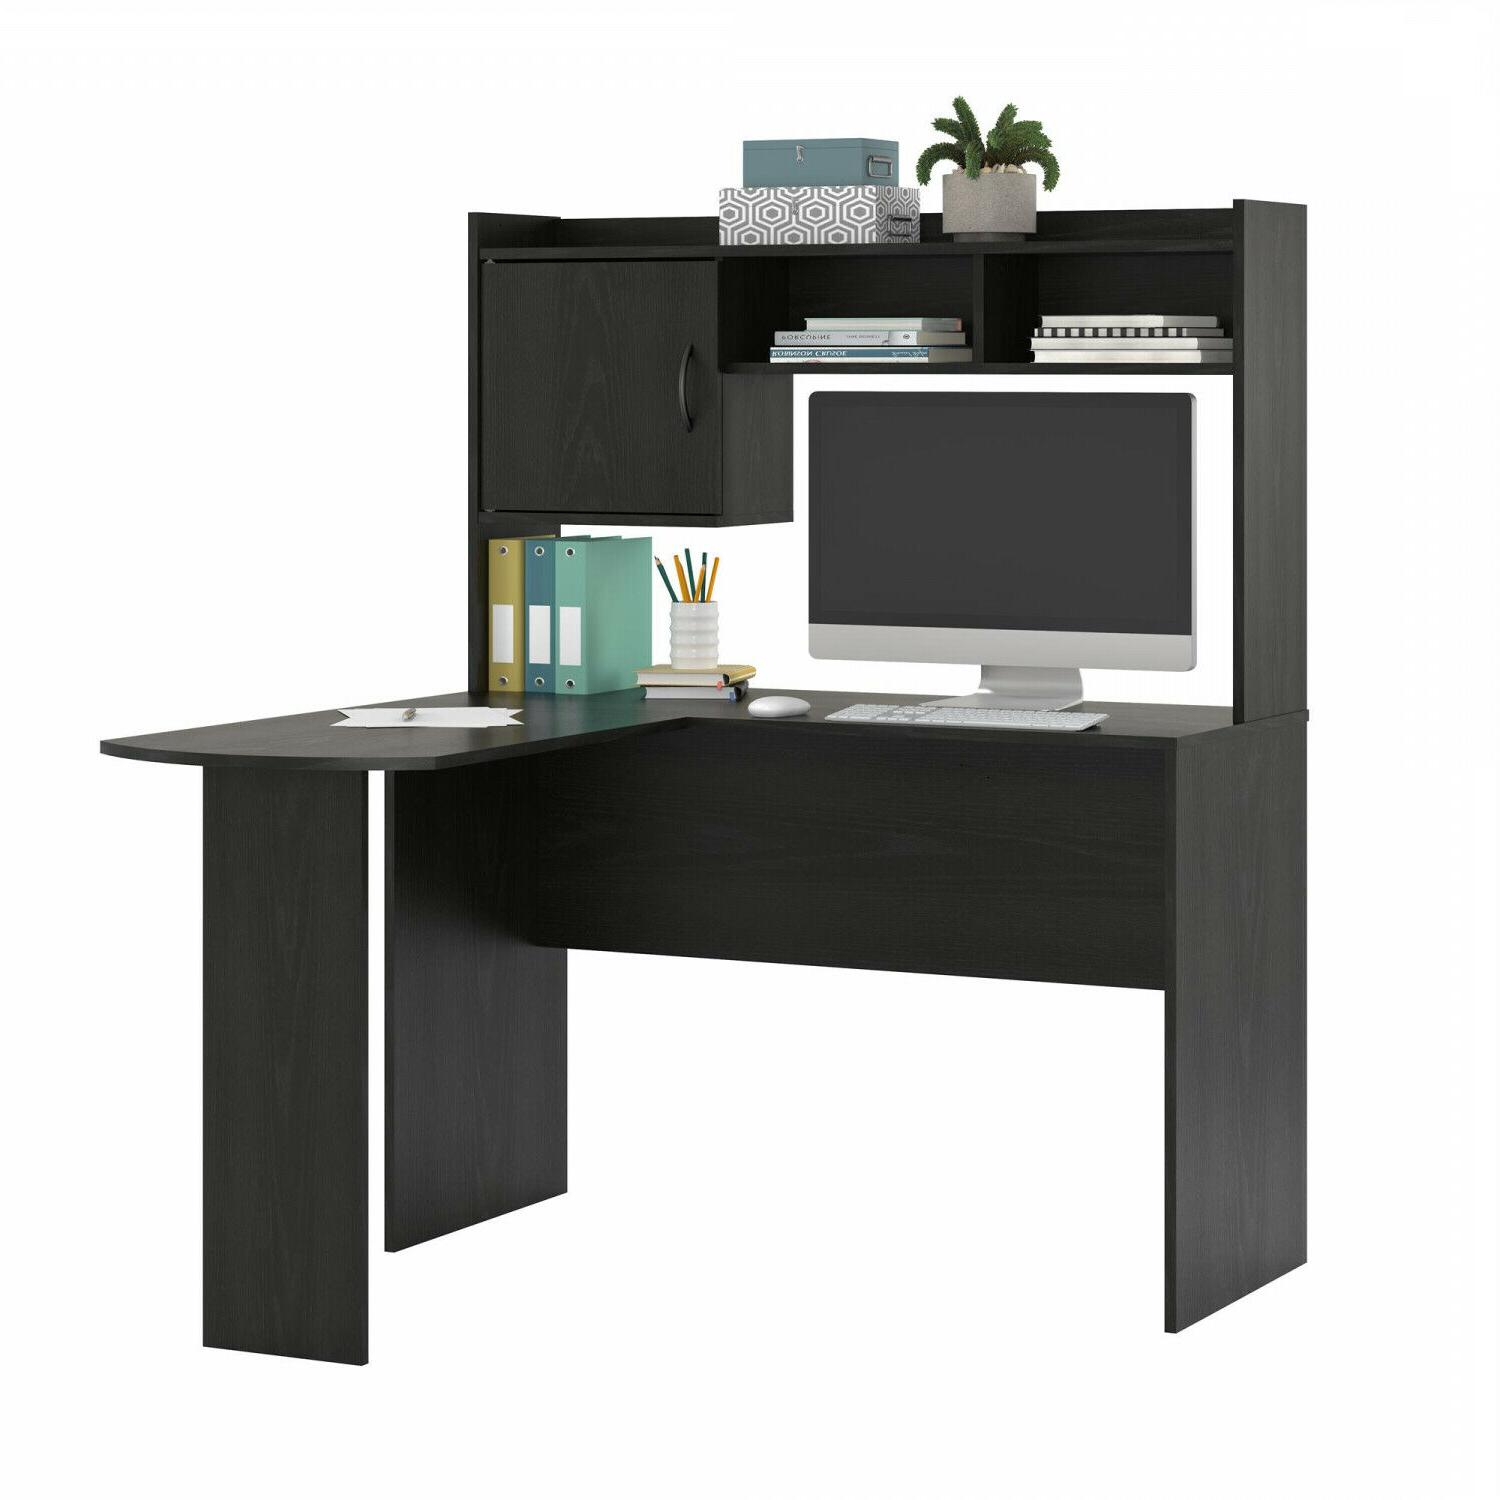 Desk Hutch Home Office Cubbies and